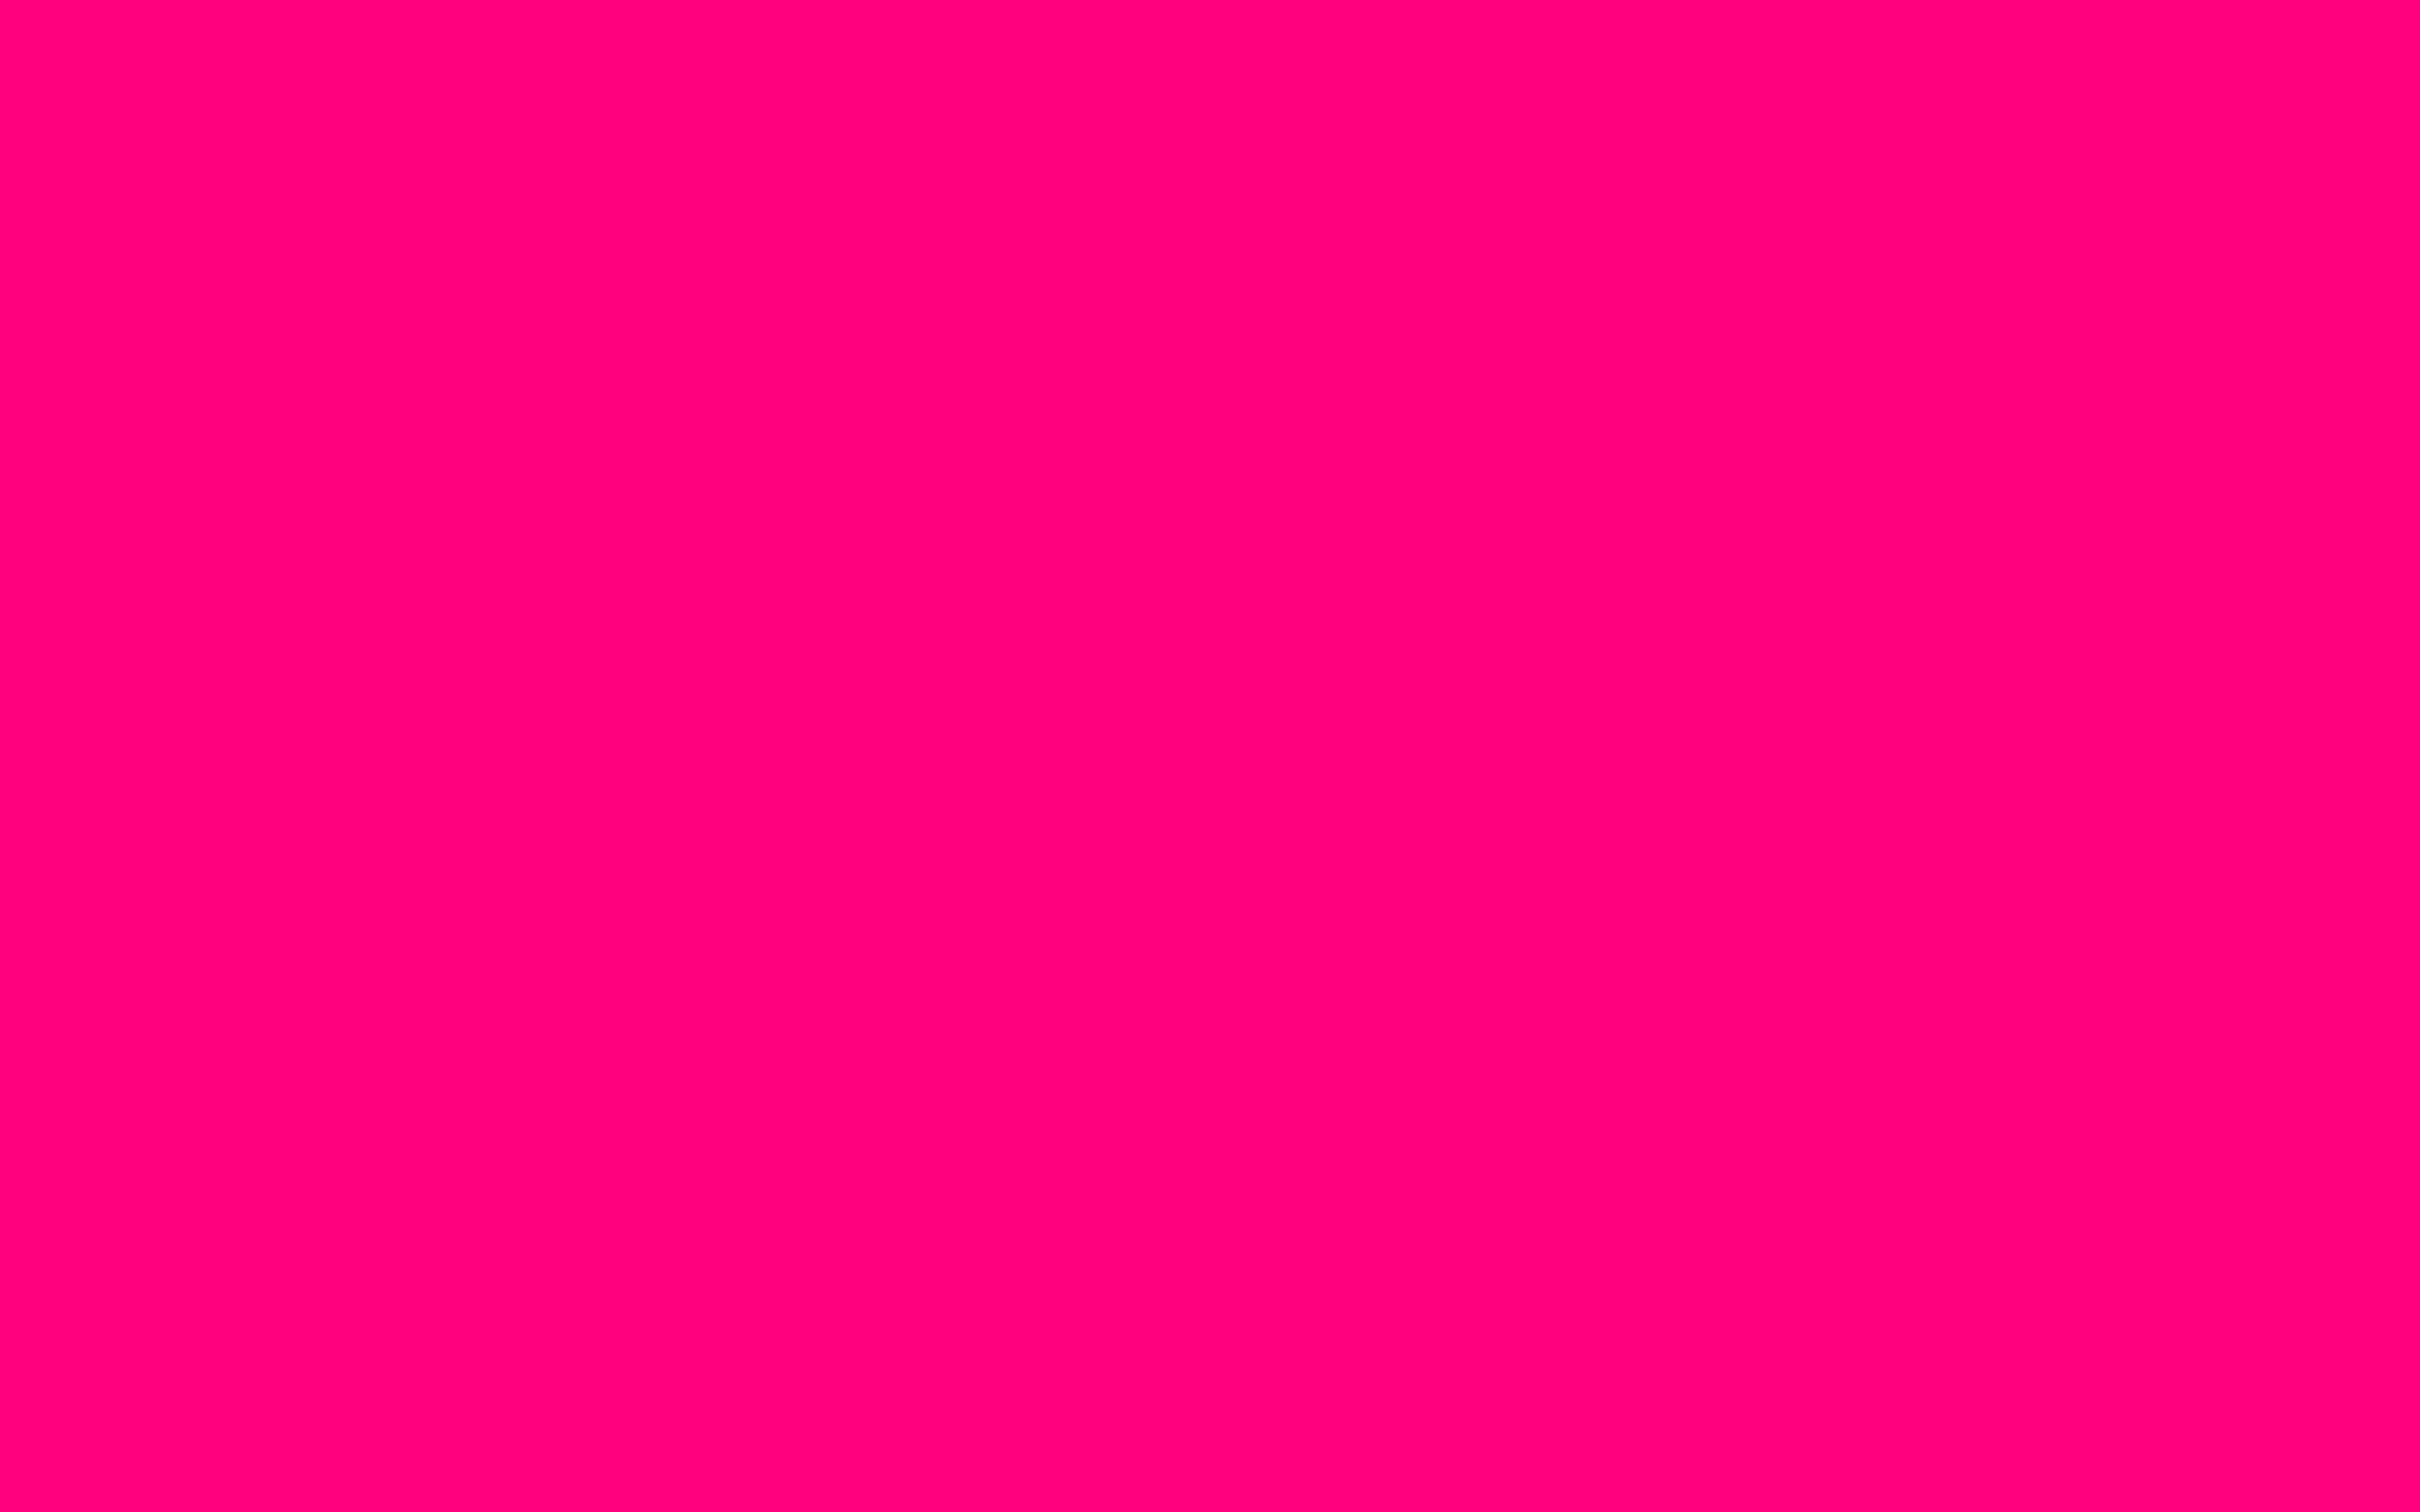 2880x1800 Bright Pink Solid Color Background